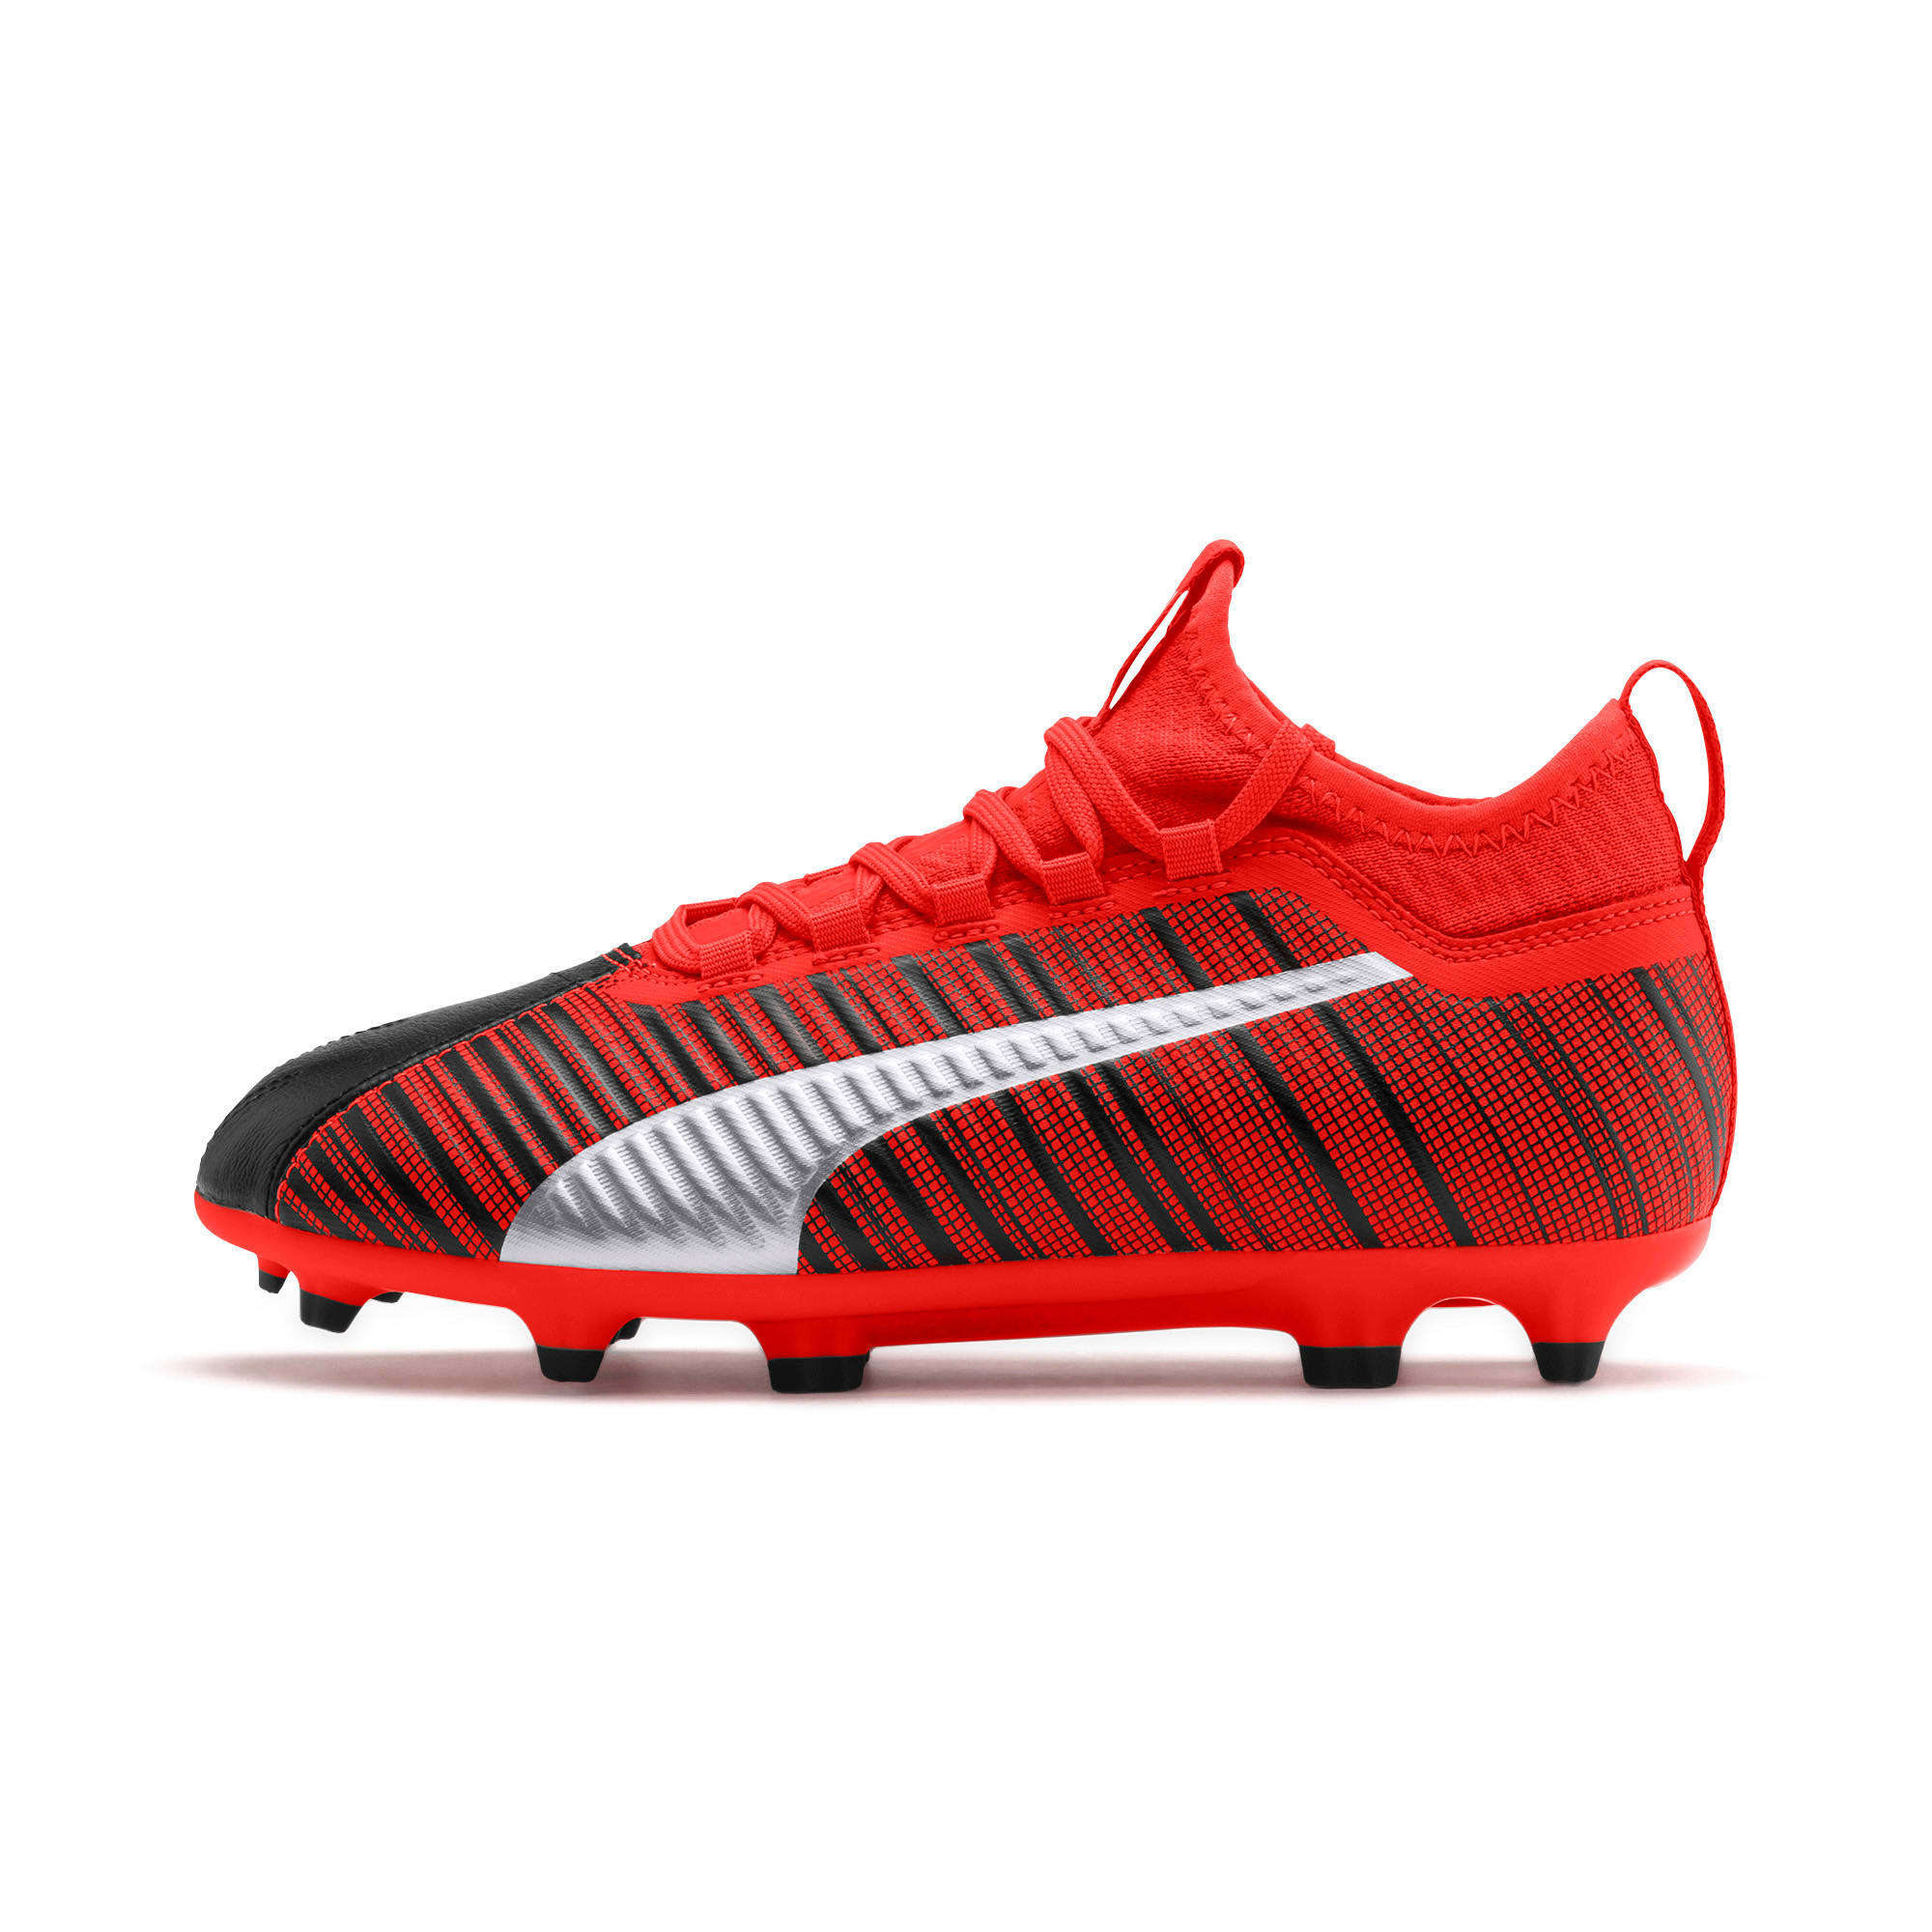 Thumbnail 1 of PUMA ONE 5.3 FG/AG Youth Fußballschuhe, Black-Nrgy Red-Aged Silver, medium